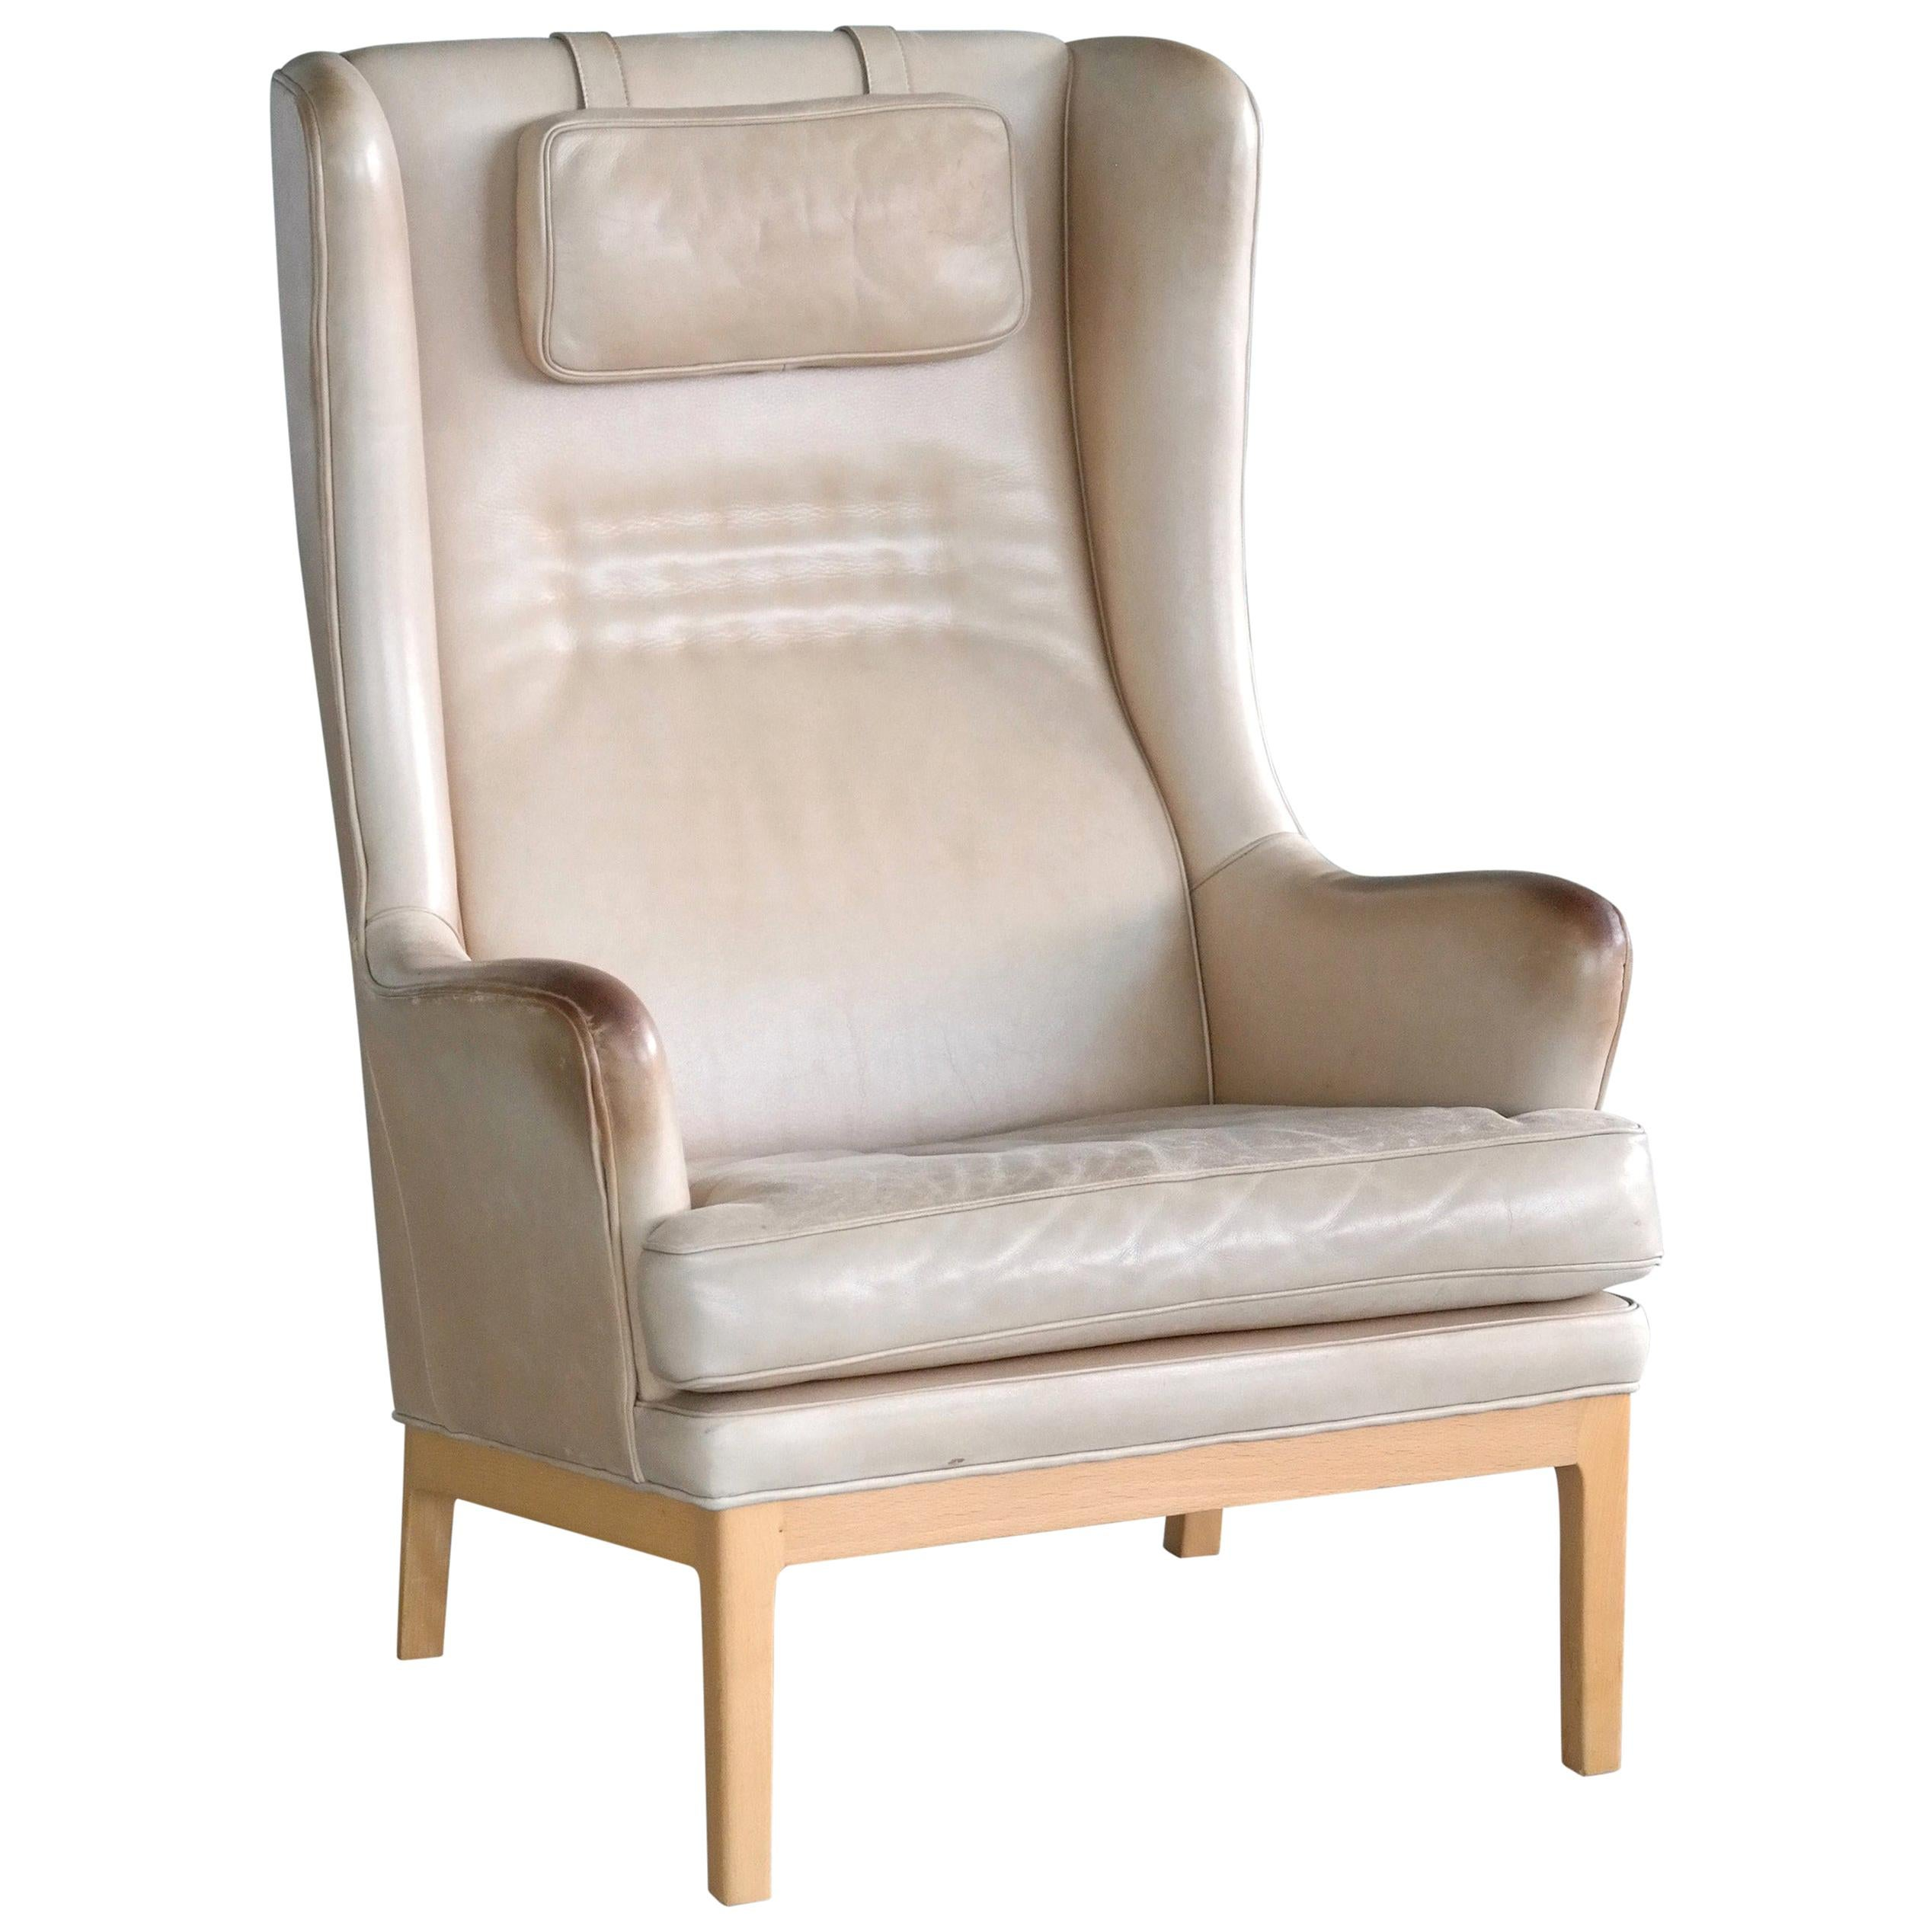 Midcentury Scandinavian Arne Norell High Back Lounge Chair in Worn Tan Leather